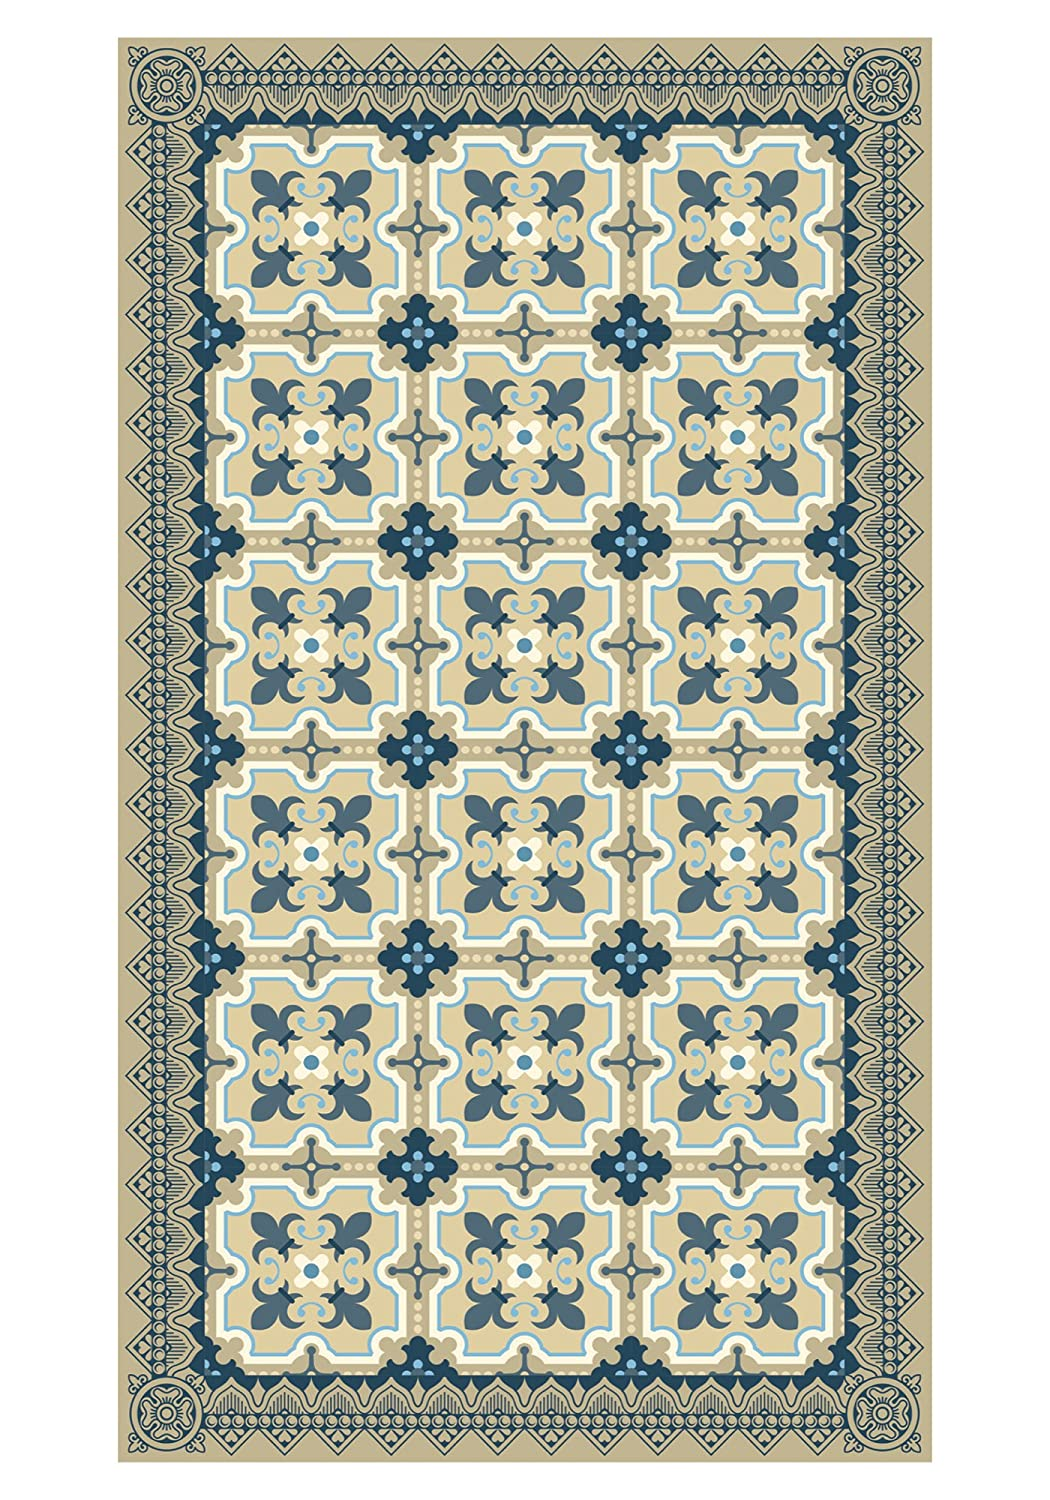 Huella Deco H1012-DO Antique Tappeto Doormate Mat Floor, Vinile, 40x70 cm Koeso Srl